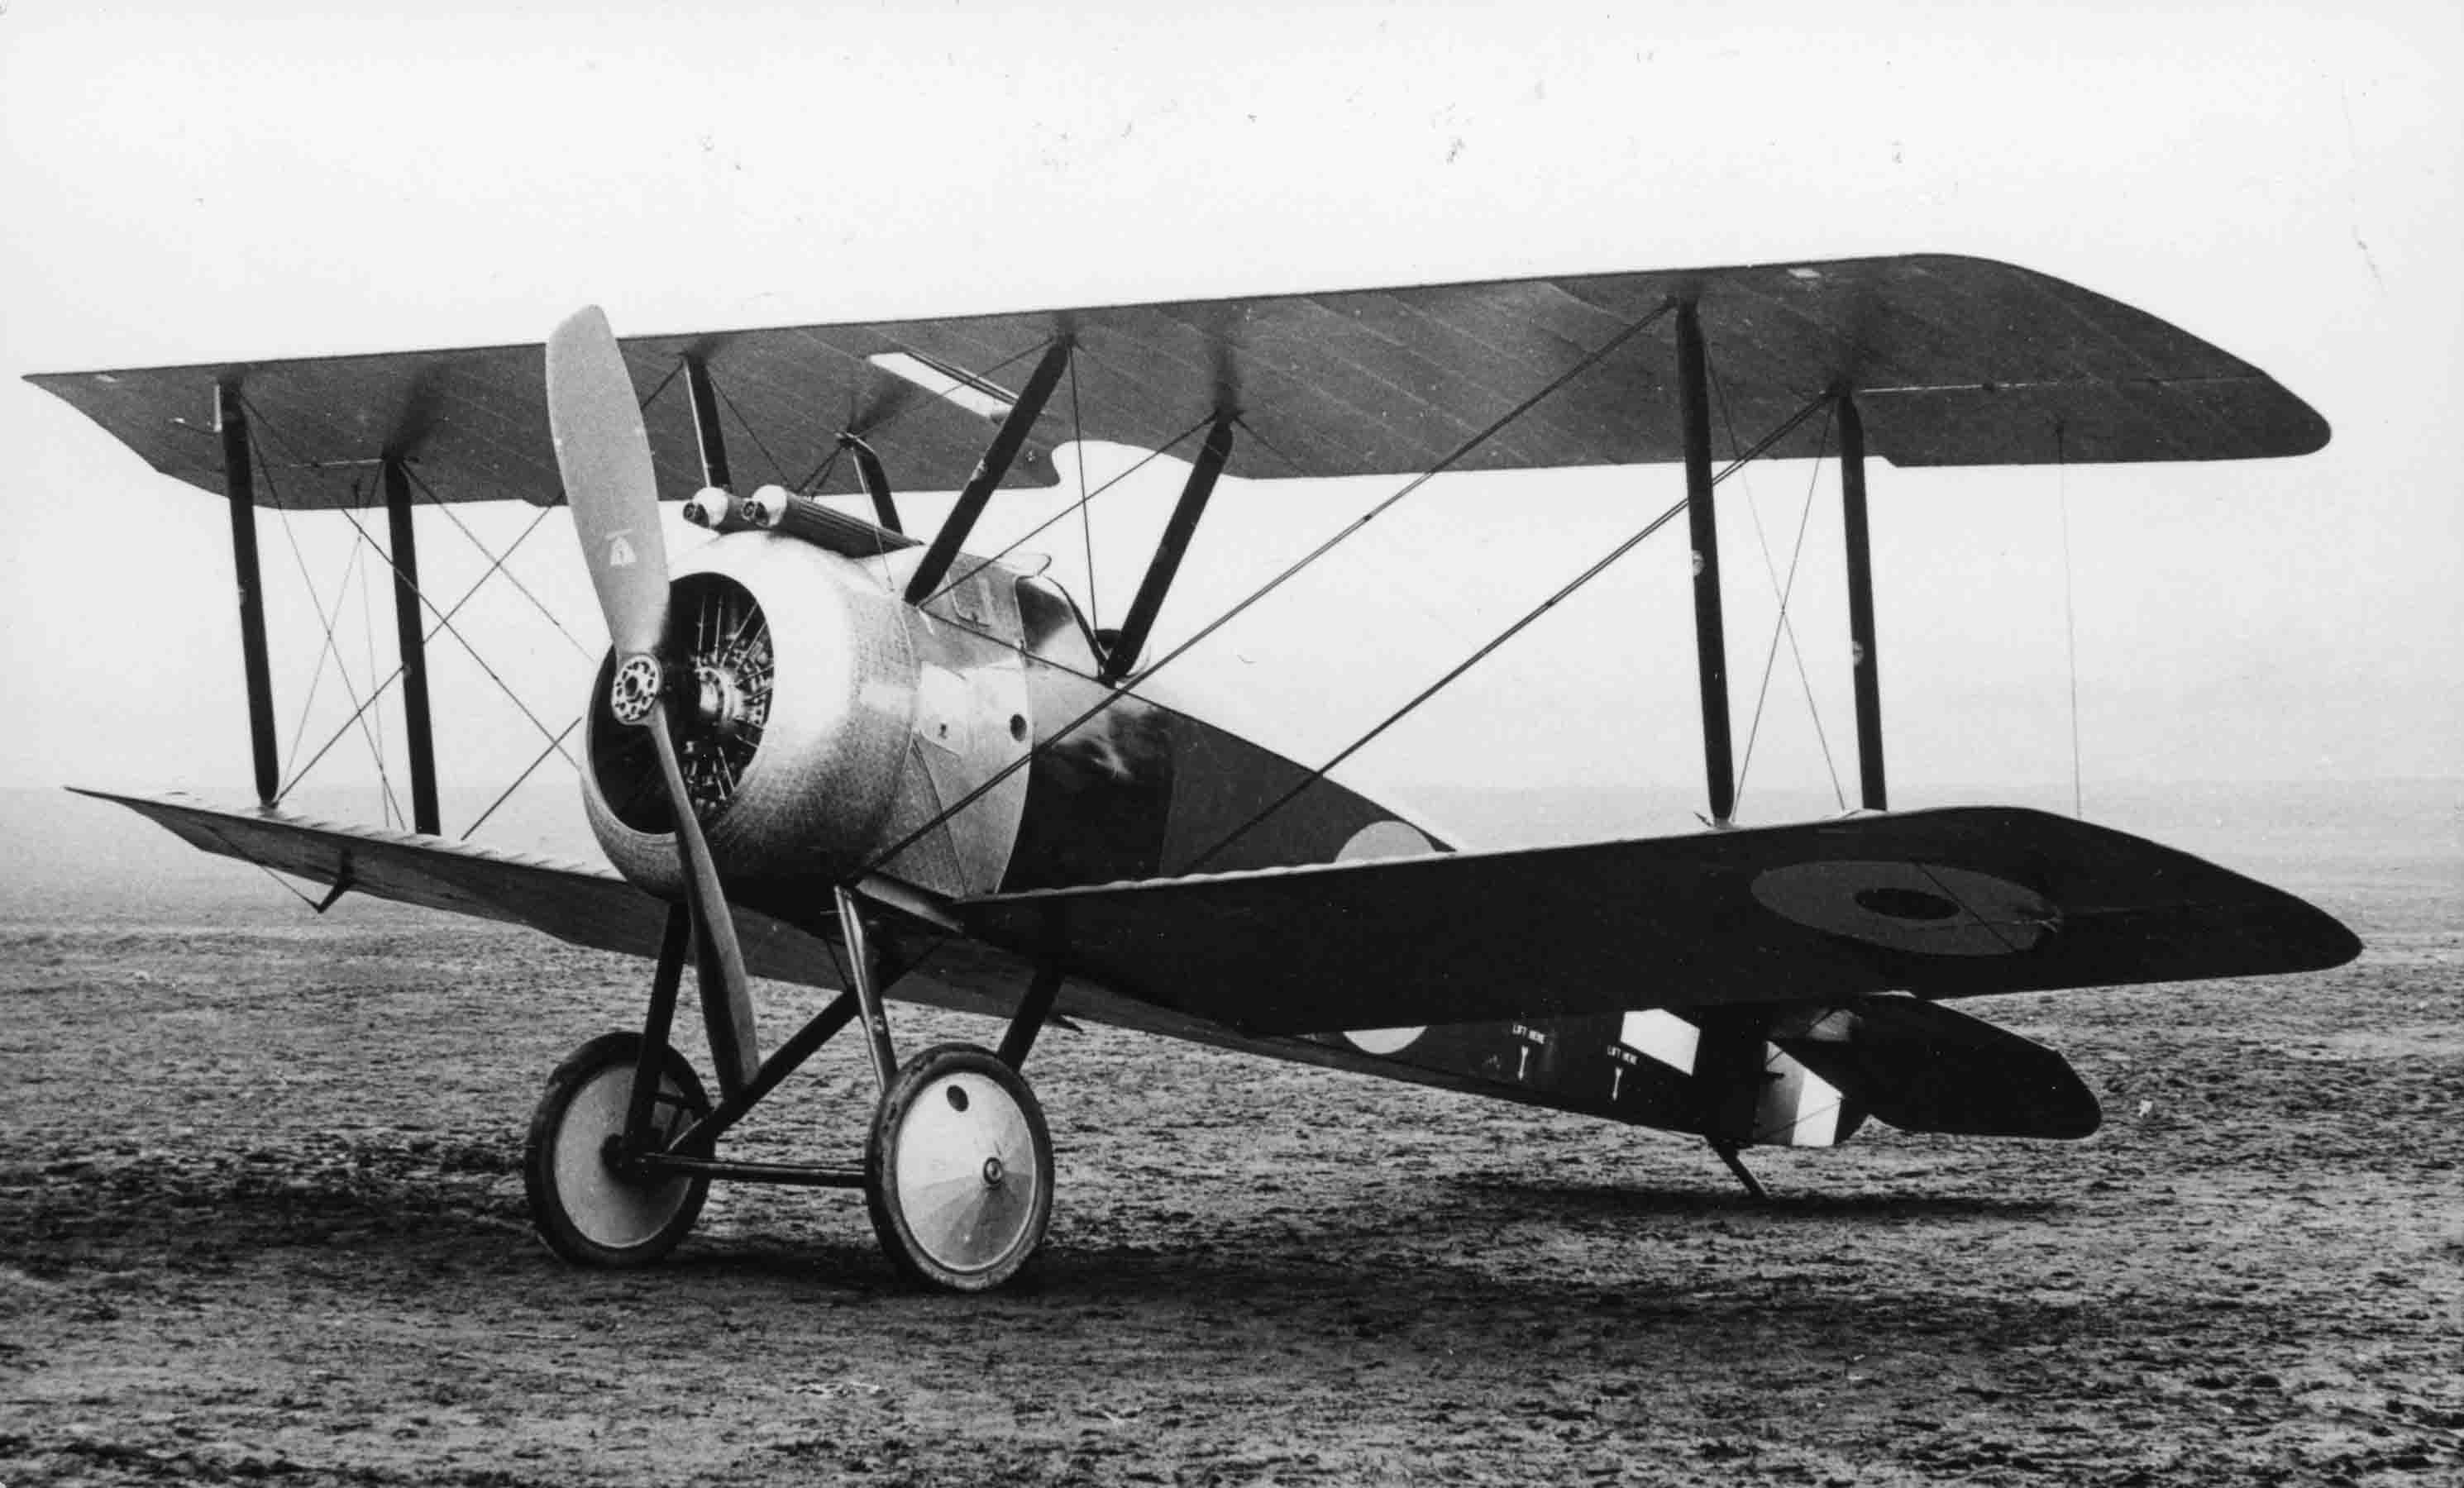 X003-2602-14880: This aircraft, probably the second or third prototype photographed in 1917, was fitted with a revised gun fairing, windscreen, a one-piece upper wing, a centre section cut-out and short-span ailerons.